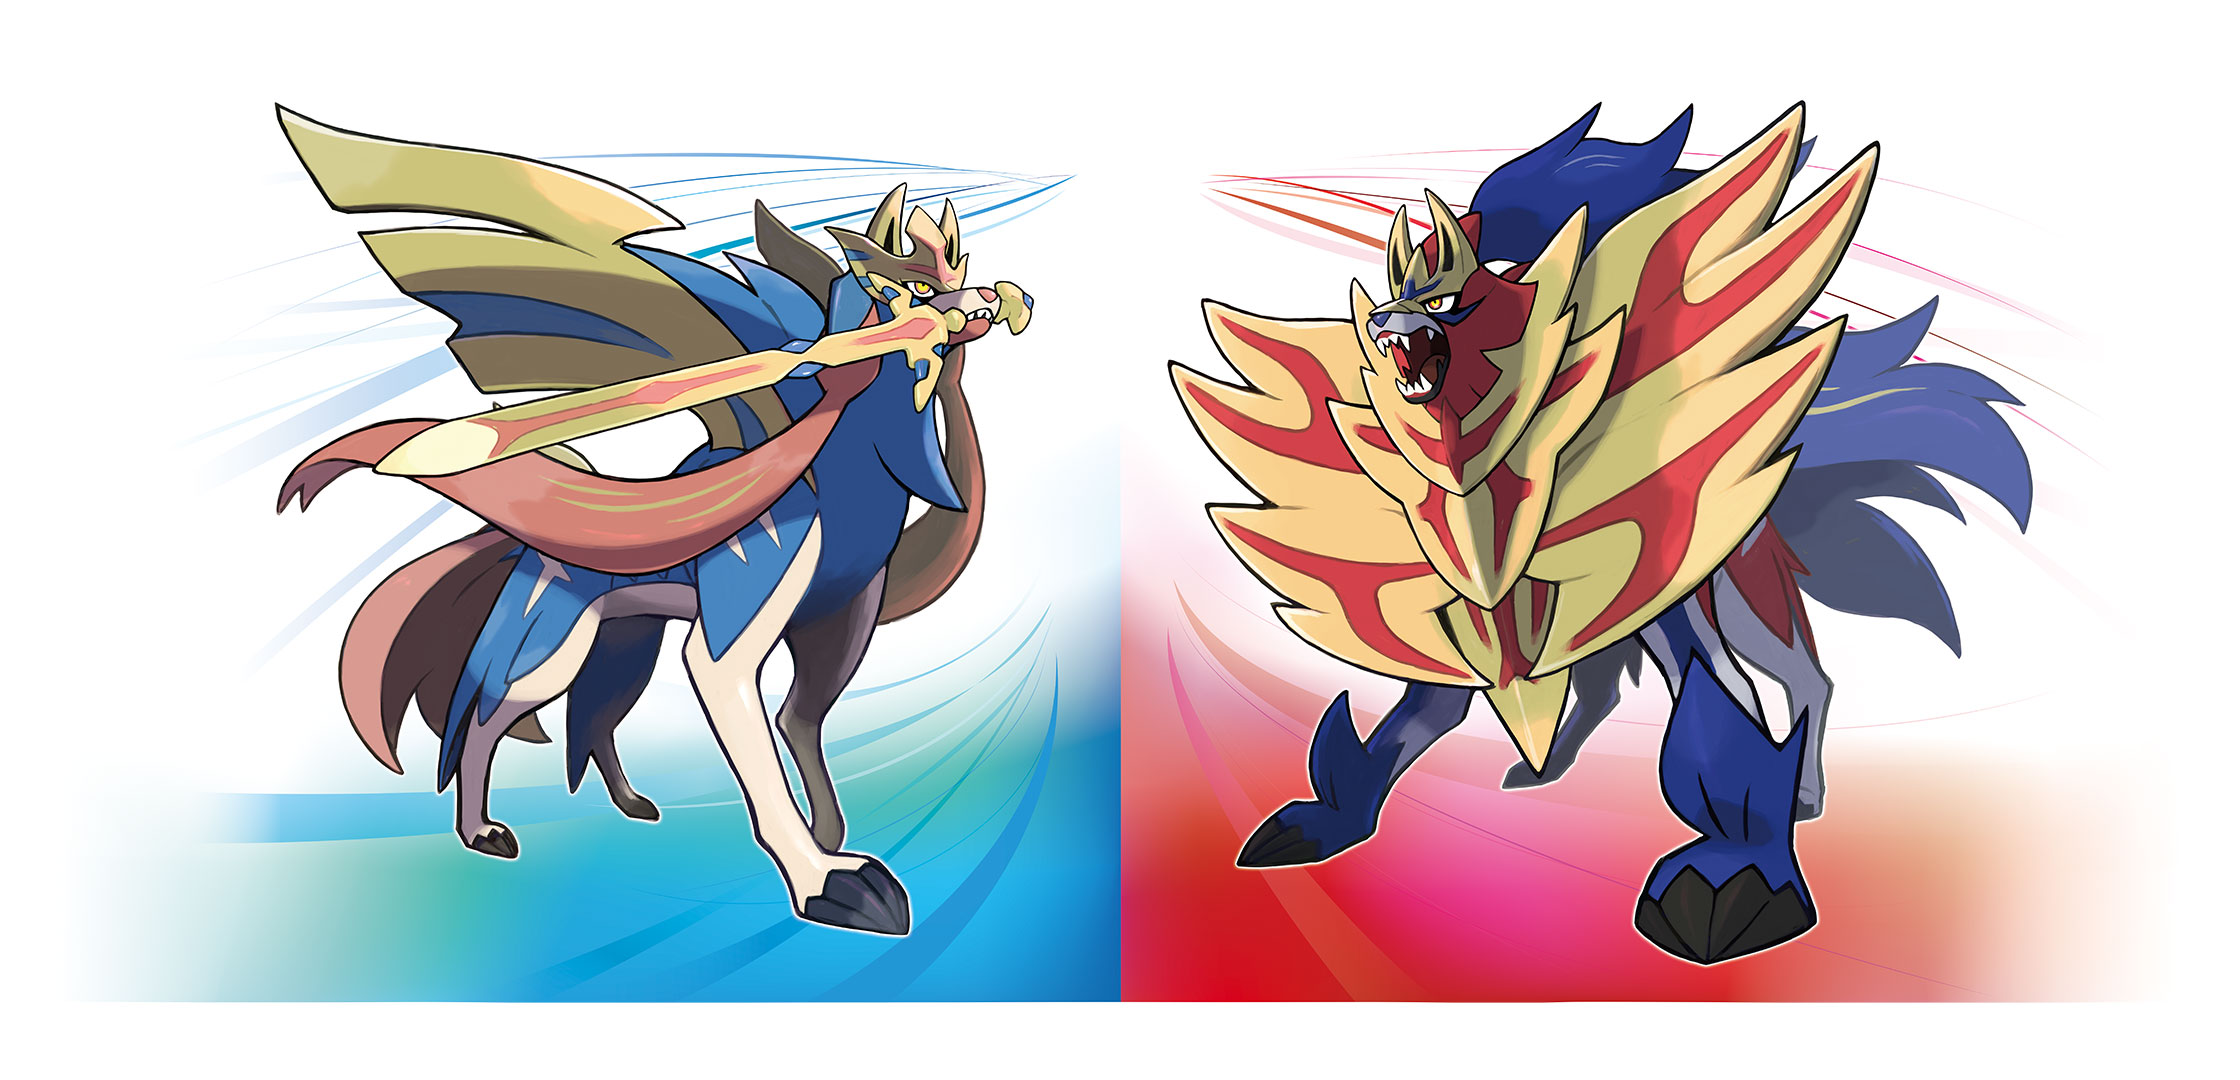 Pokemon Sword and Shield Legendaries: Zacian and Zamazenta are the